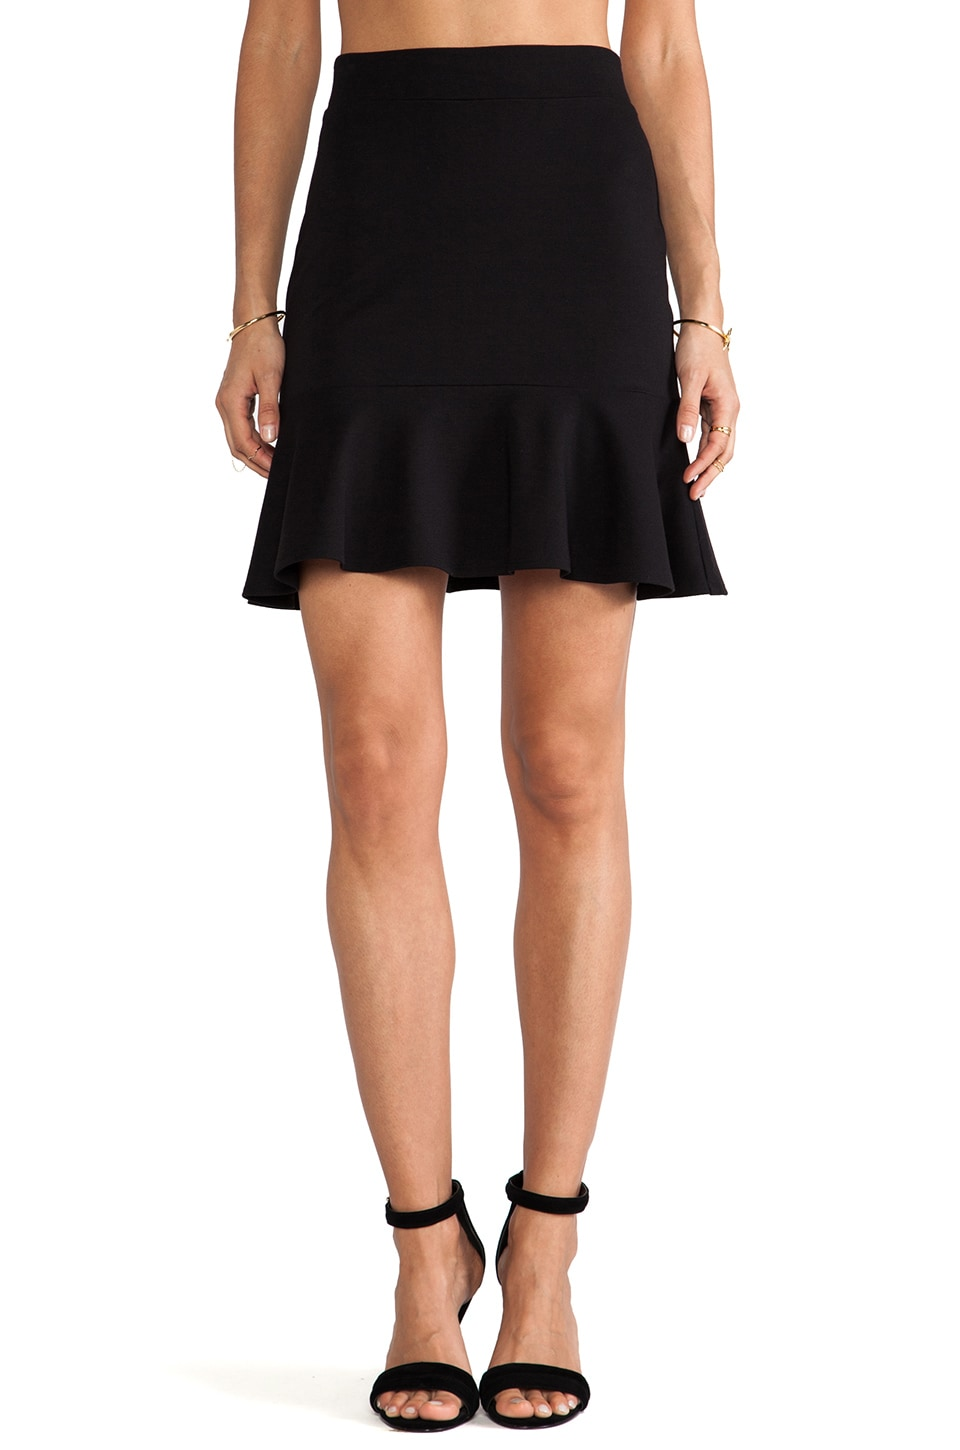 Bailey 44 Afro Salsa Skirt in Black